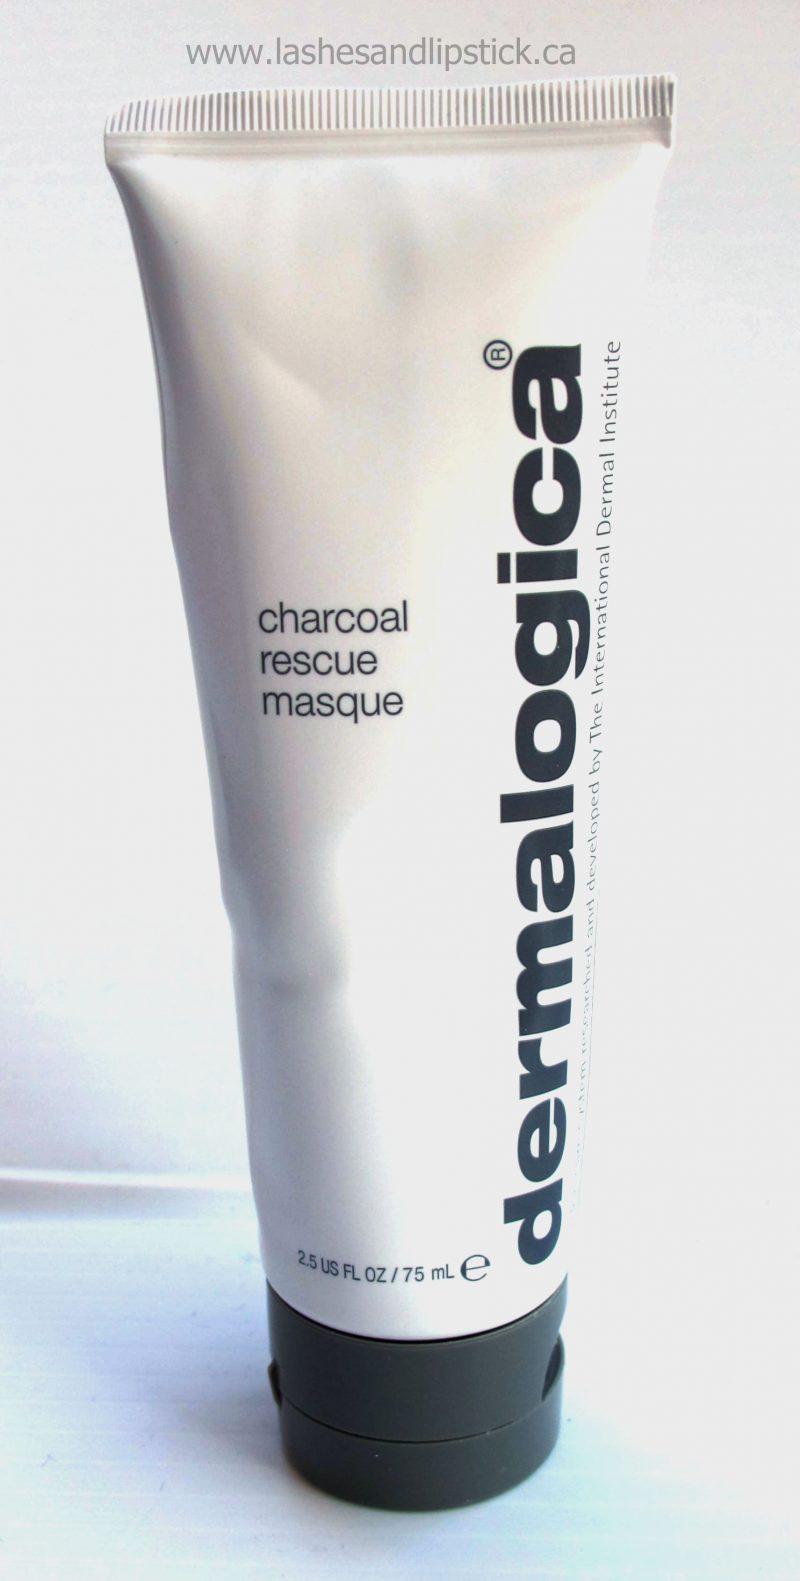 REVIEW: Dermalogica Charcoal Rescue Masque